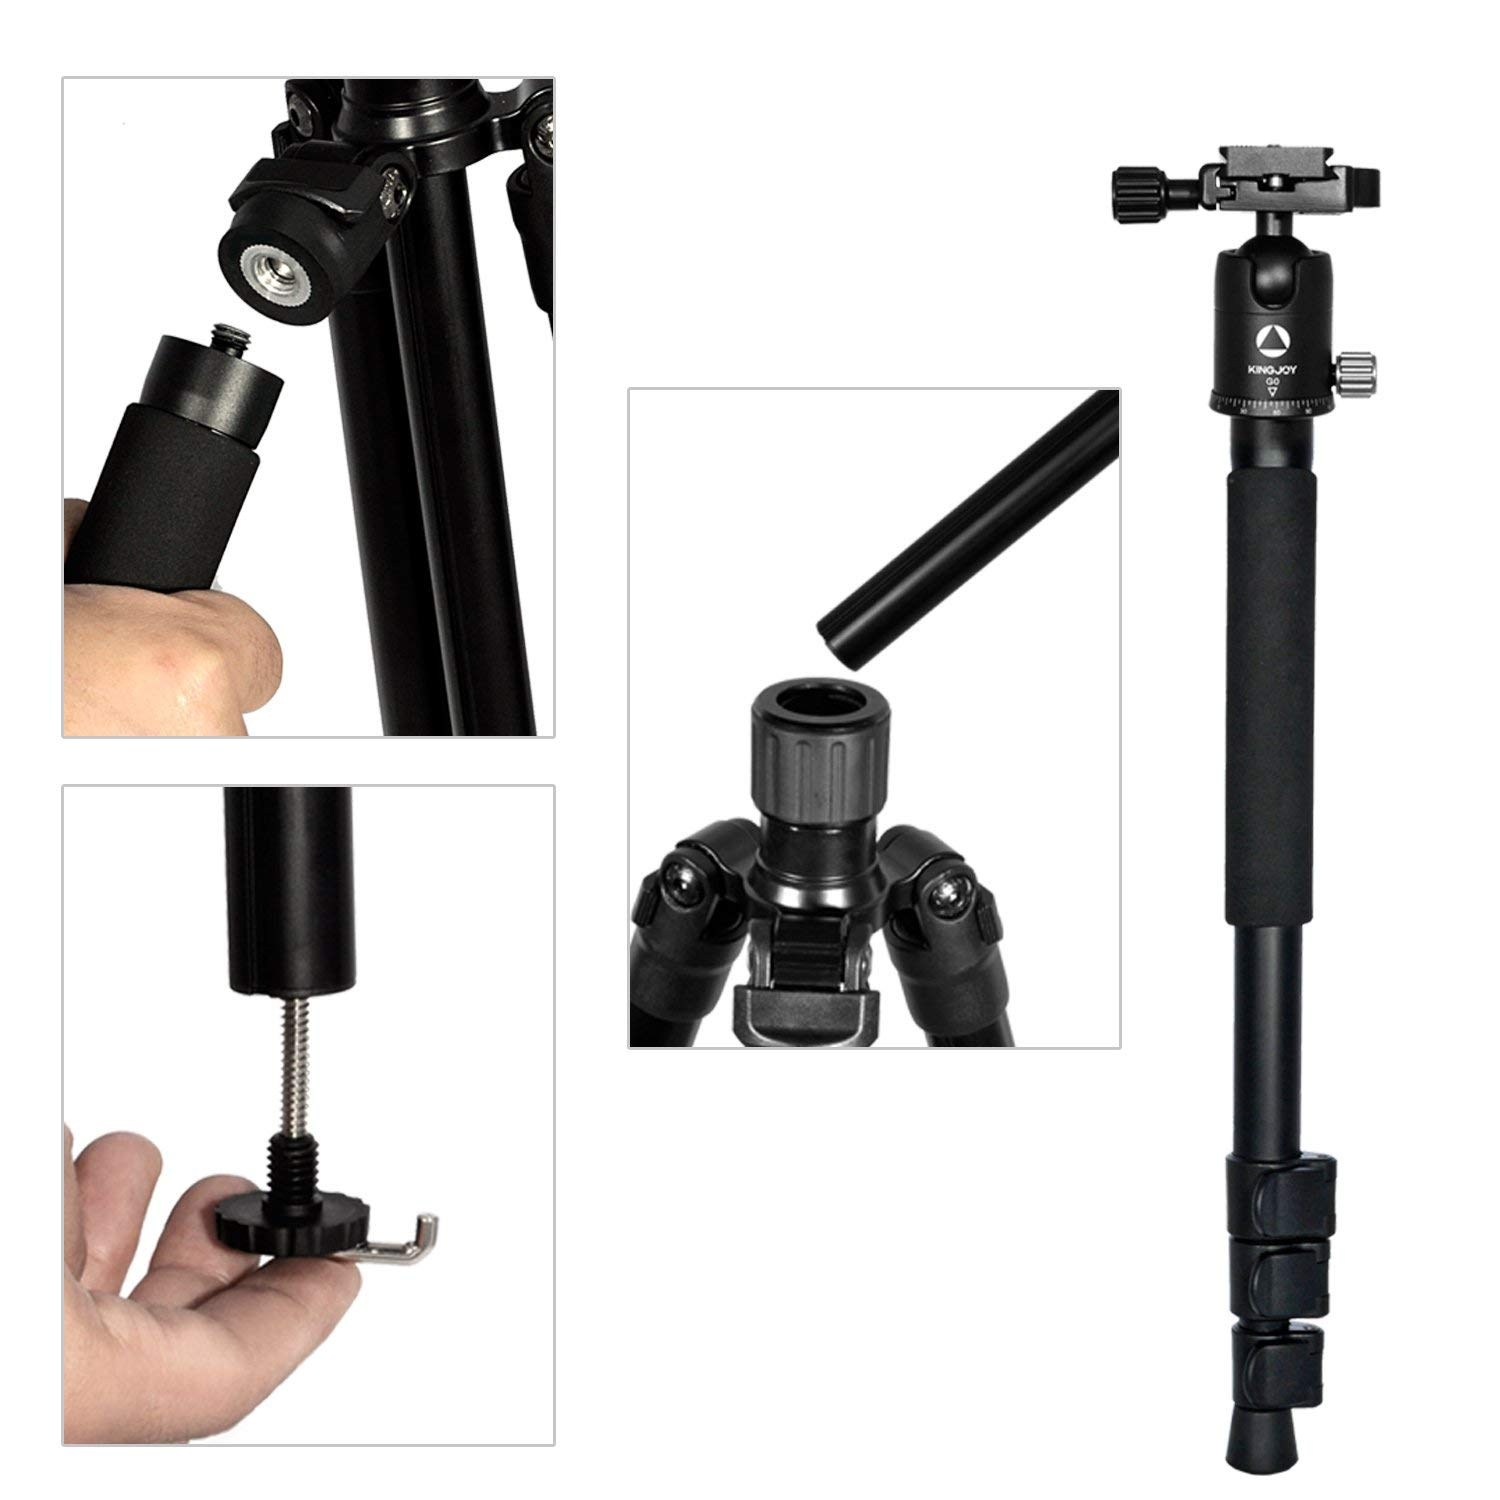 Color : Black LLluckyHW Travel Tripod Action Camera Selfie Stick Professional Video Tripod Bag for DSLR Camera Twist Lock Rotatable Center Column Travel and Work